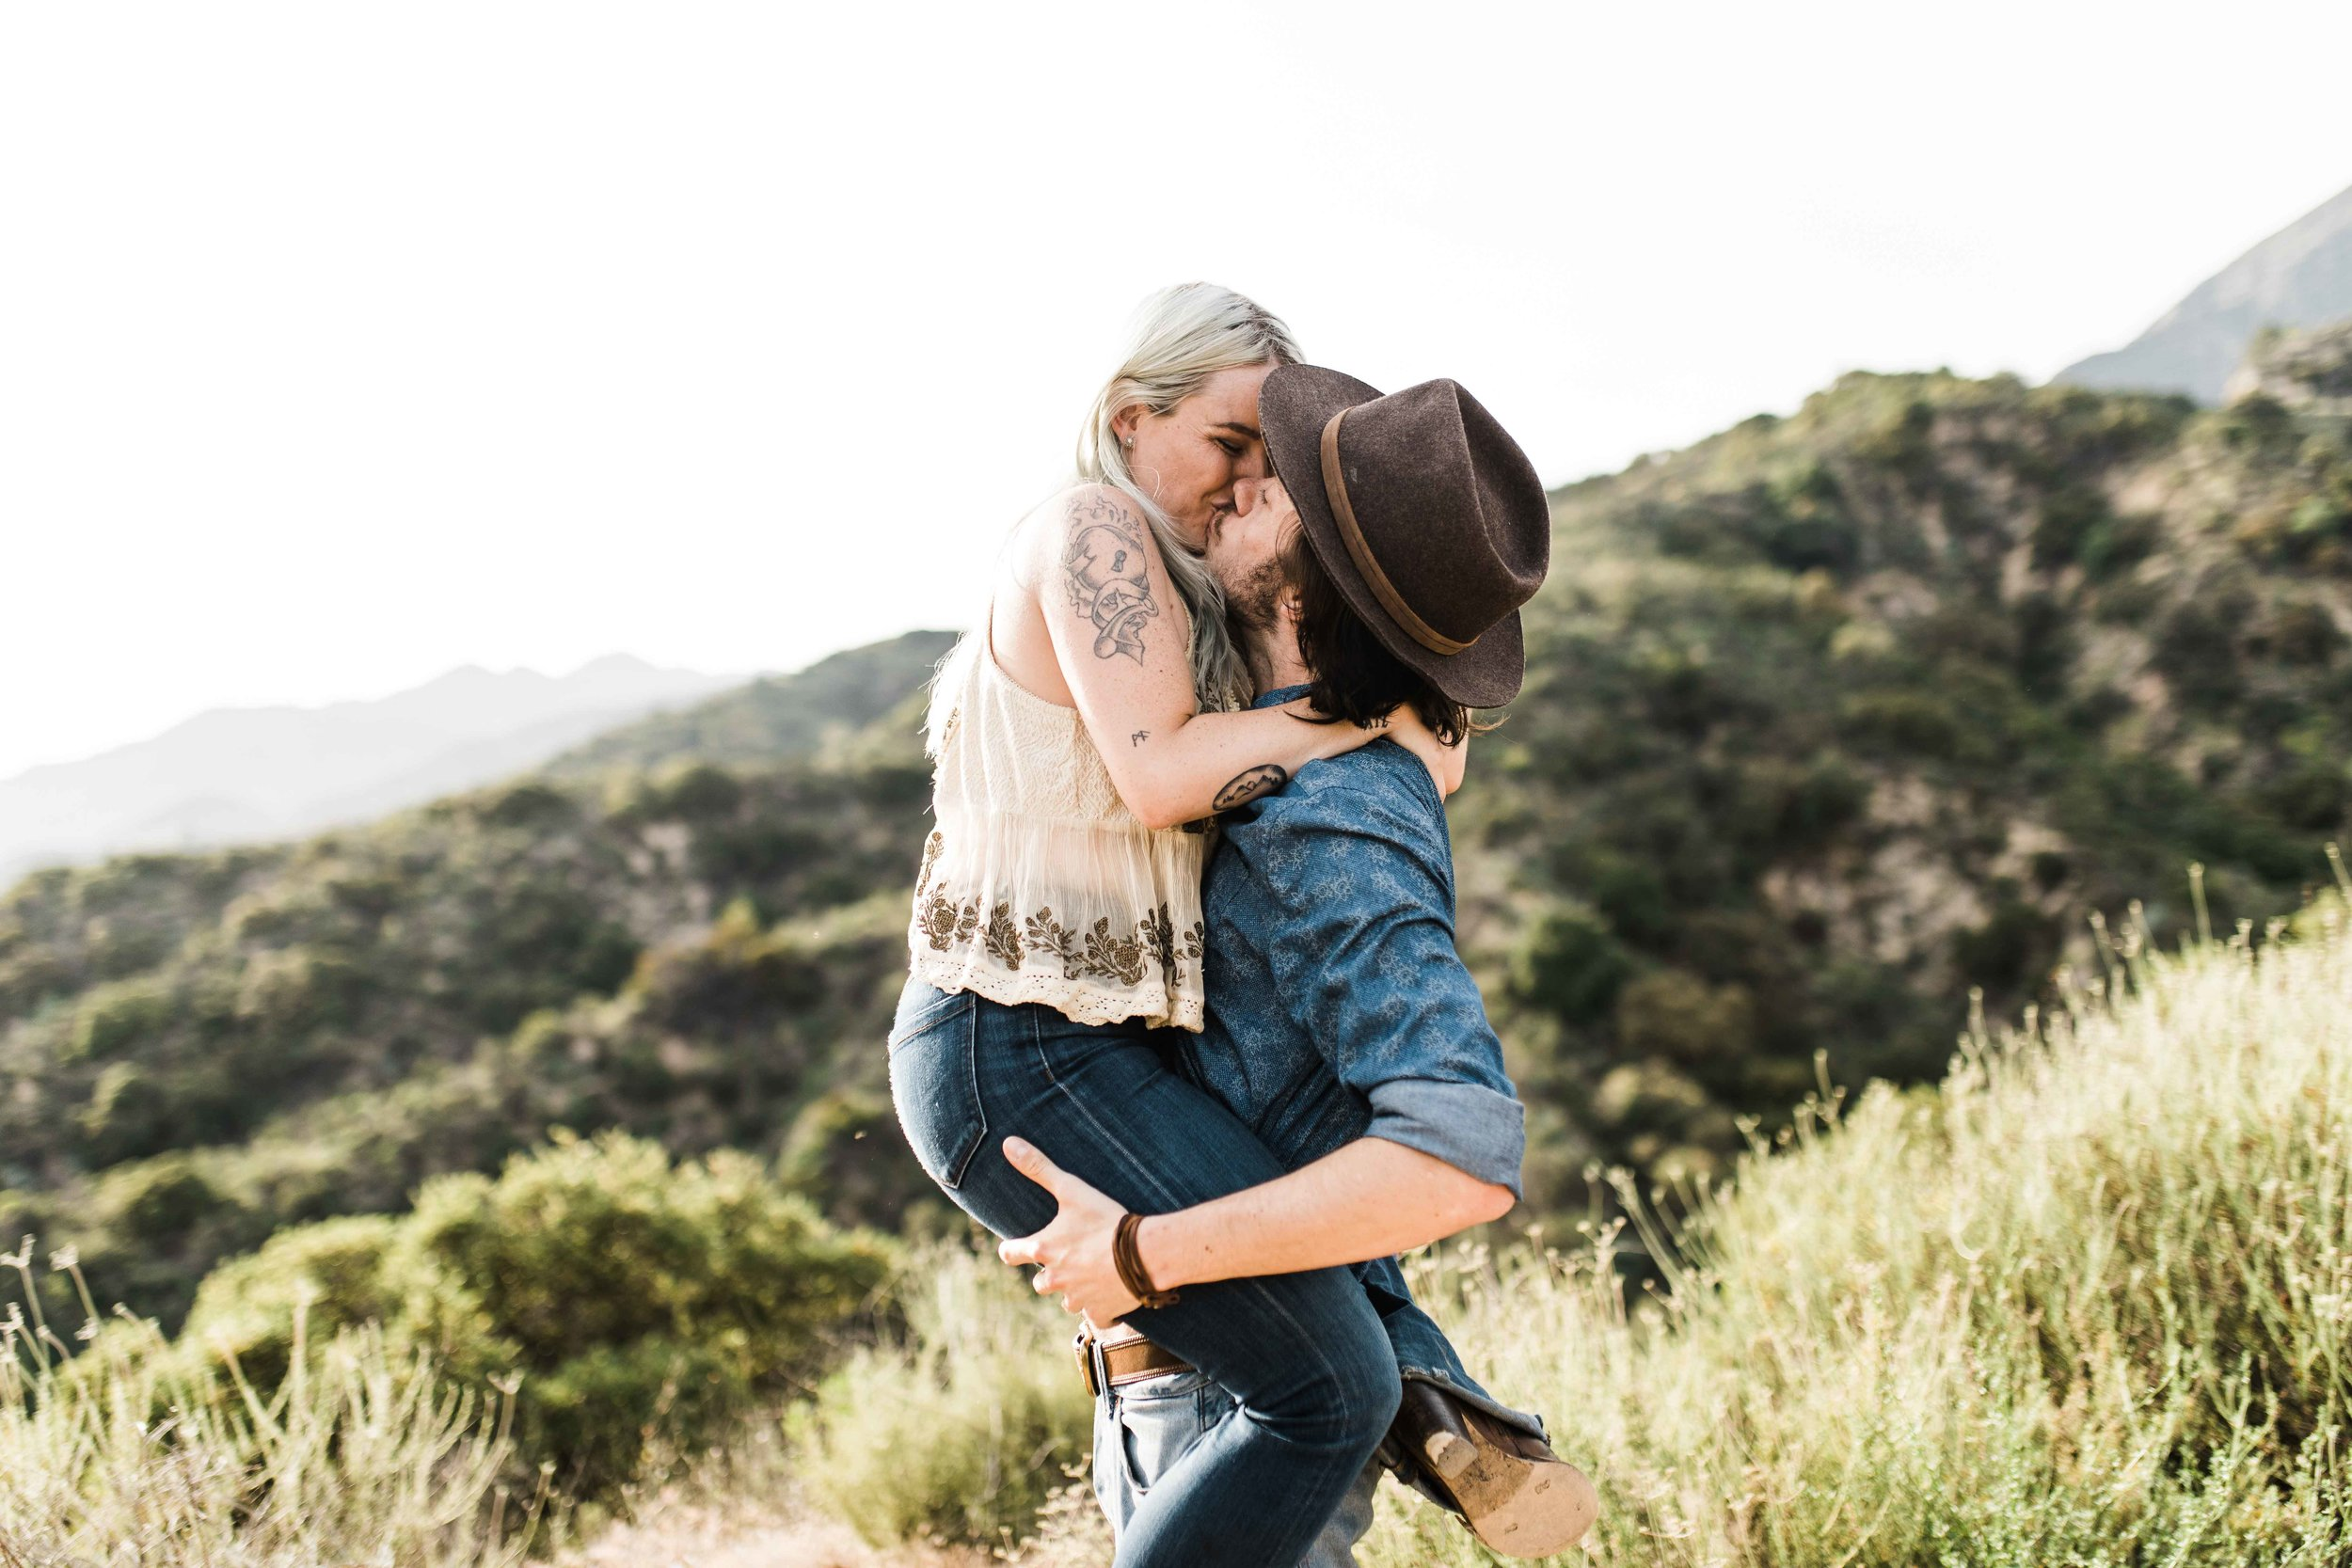 Tara&Will-Clarisse-Rae-Photo-&-Video-Southern-California-Wedding-Photographer-&-Videographer-Los-Angeles-Engagement-Session_7